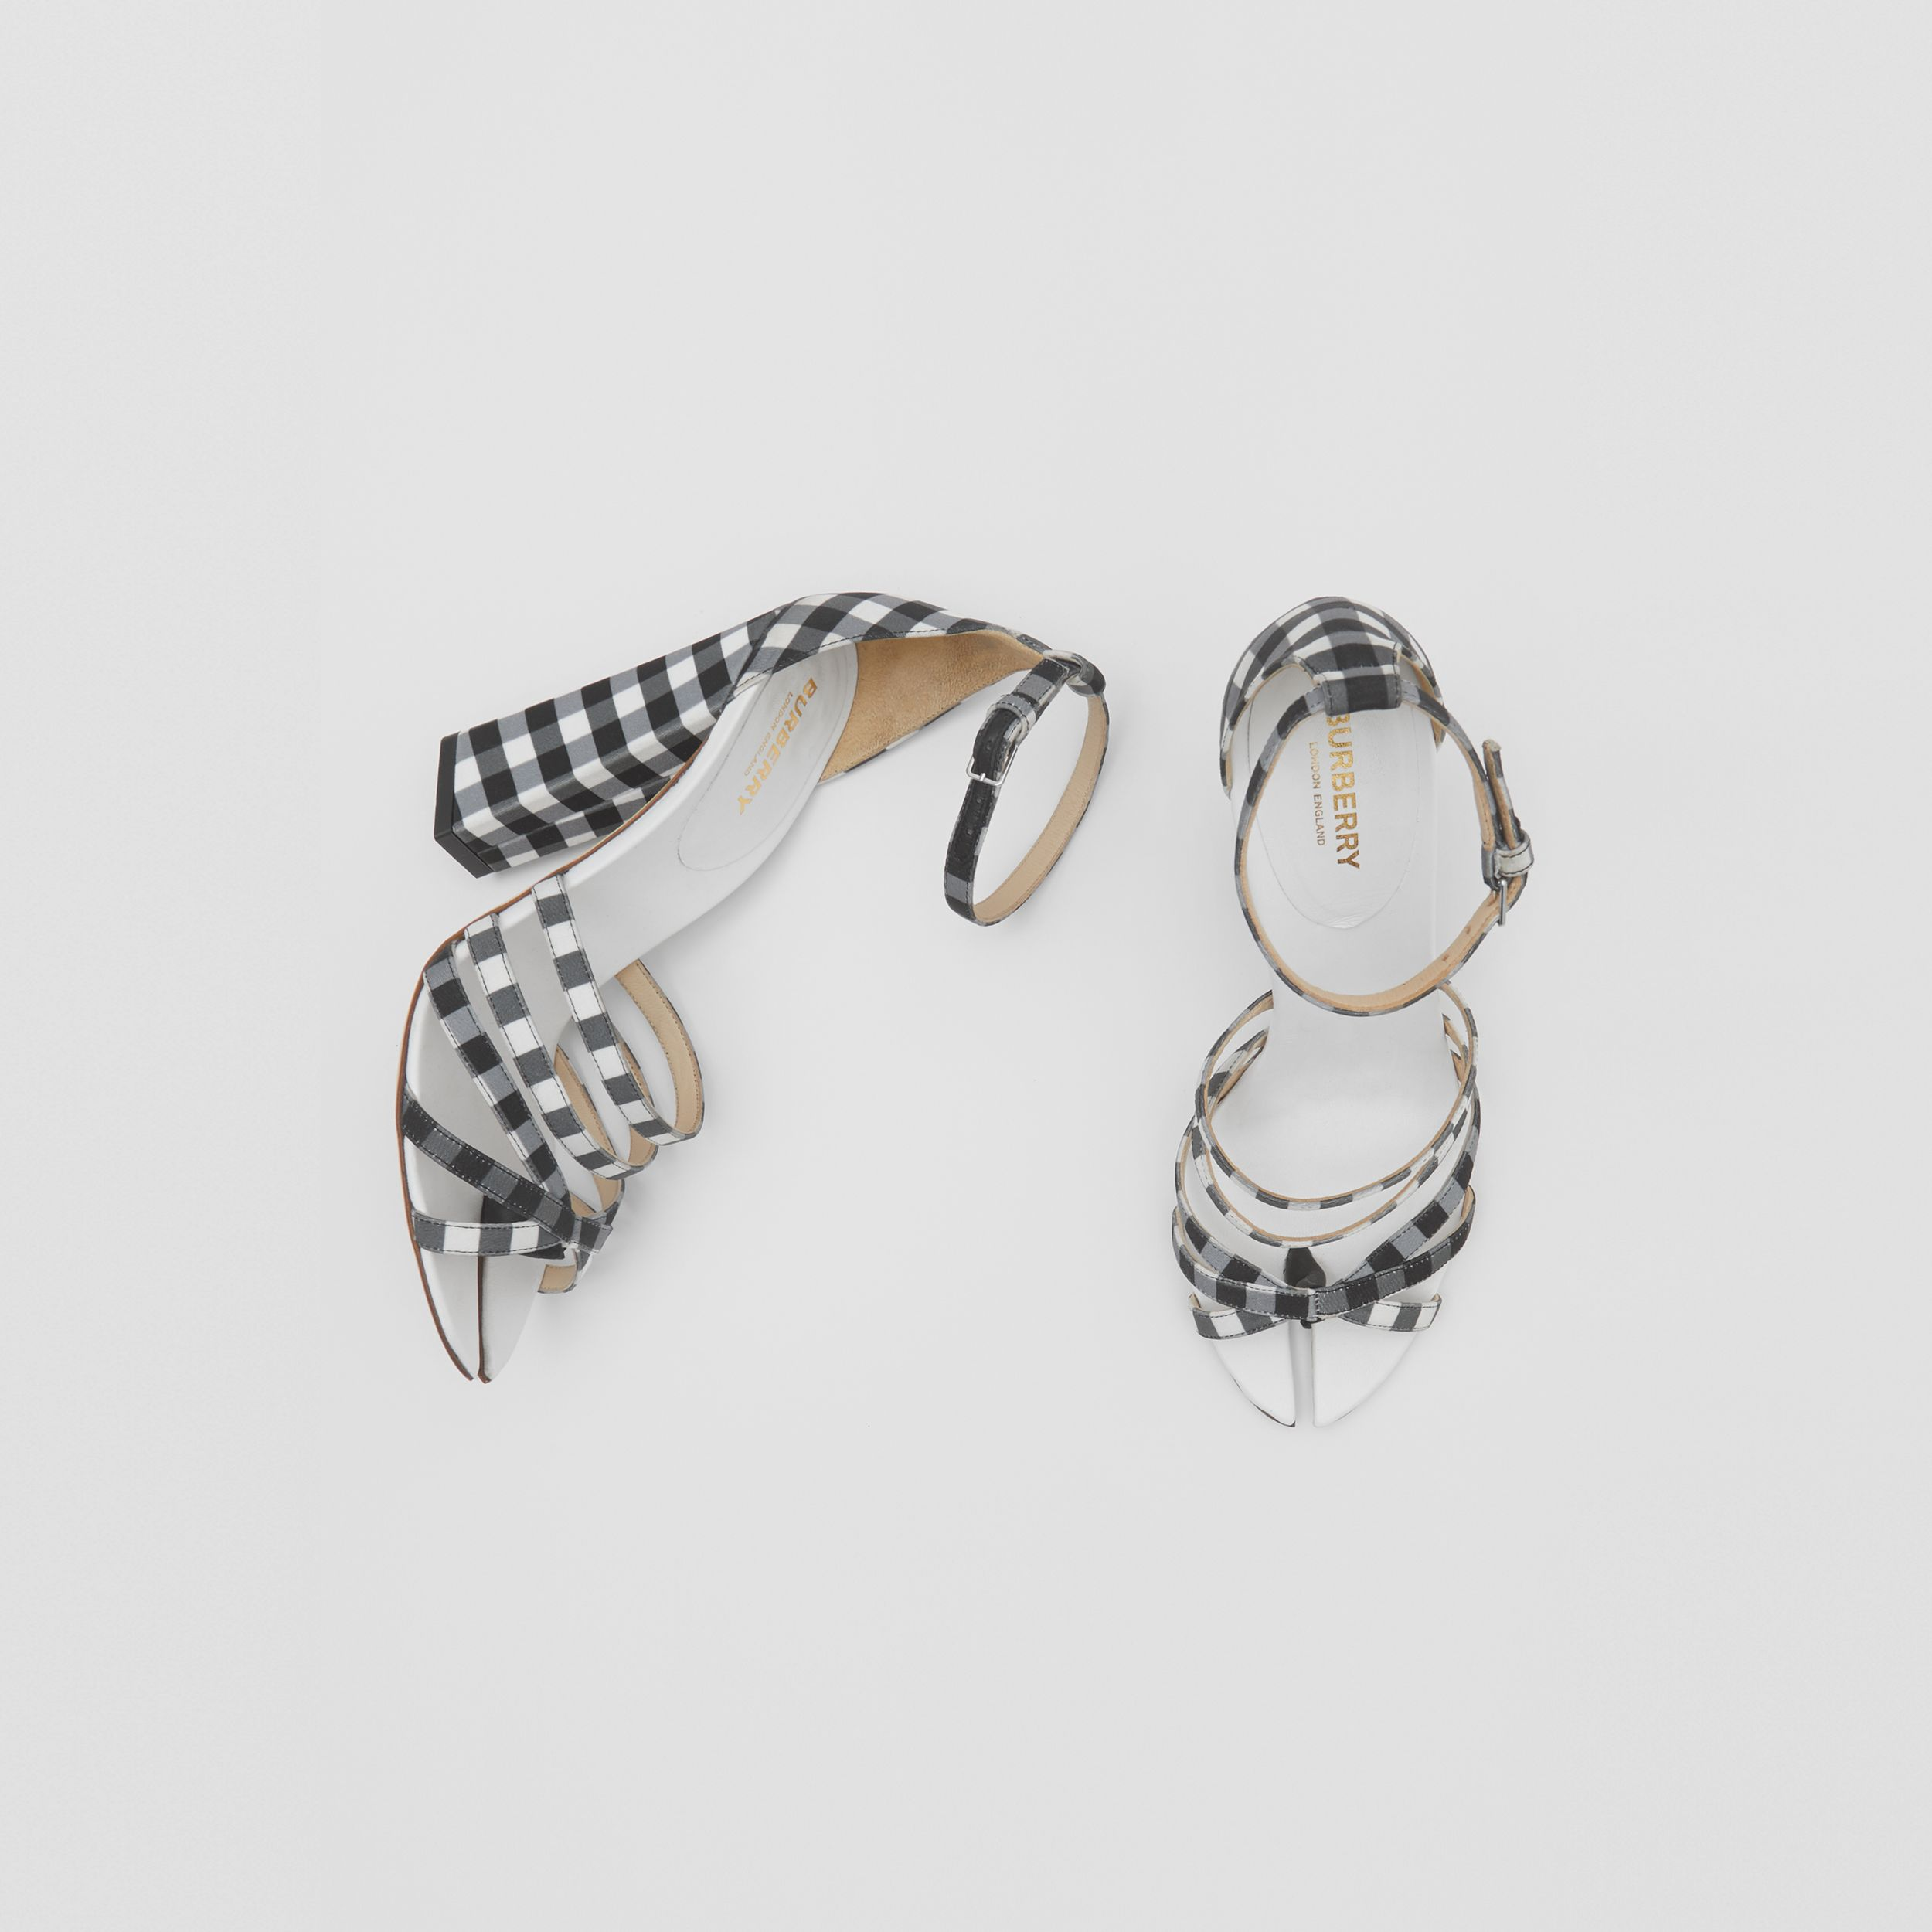 Split-Toe Detail Gingham Cotton Sandals in Black/white - Women | Burberry Hong Kong S.A.R. - 1